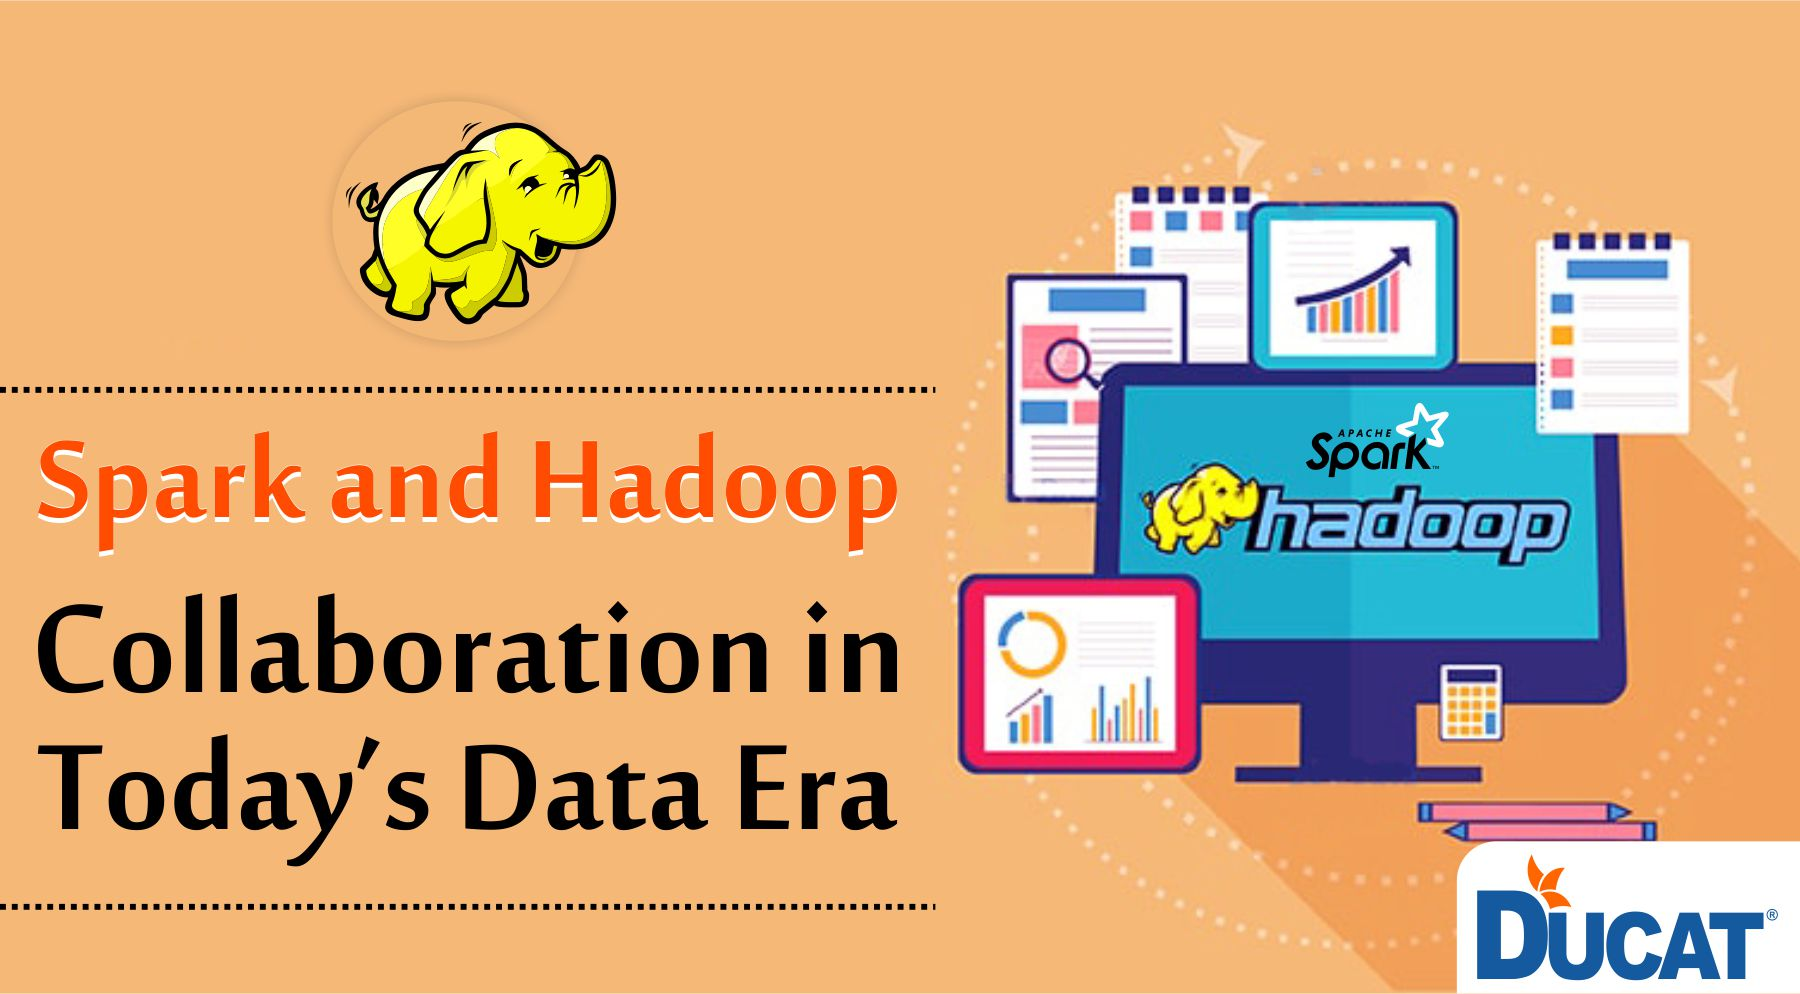 Spark and Hadoop Collaboration in Today's Data Era